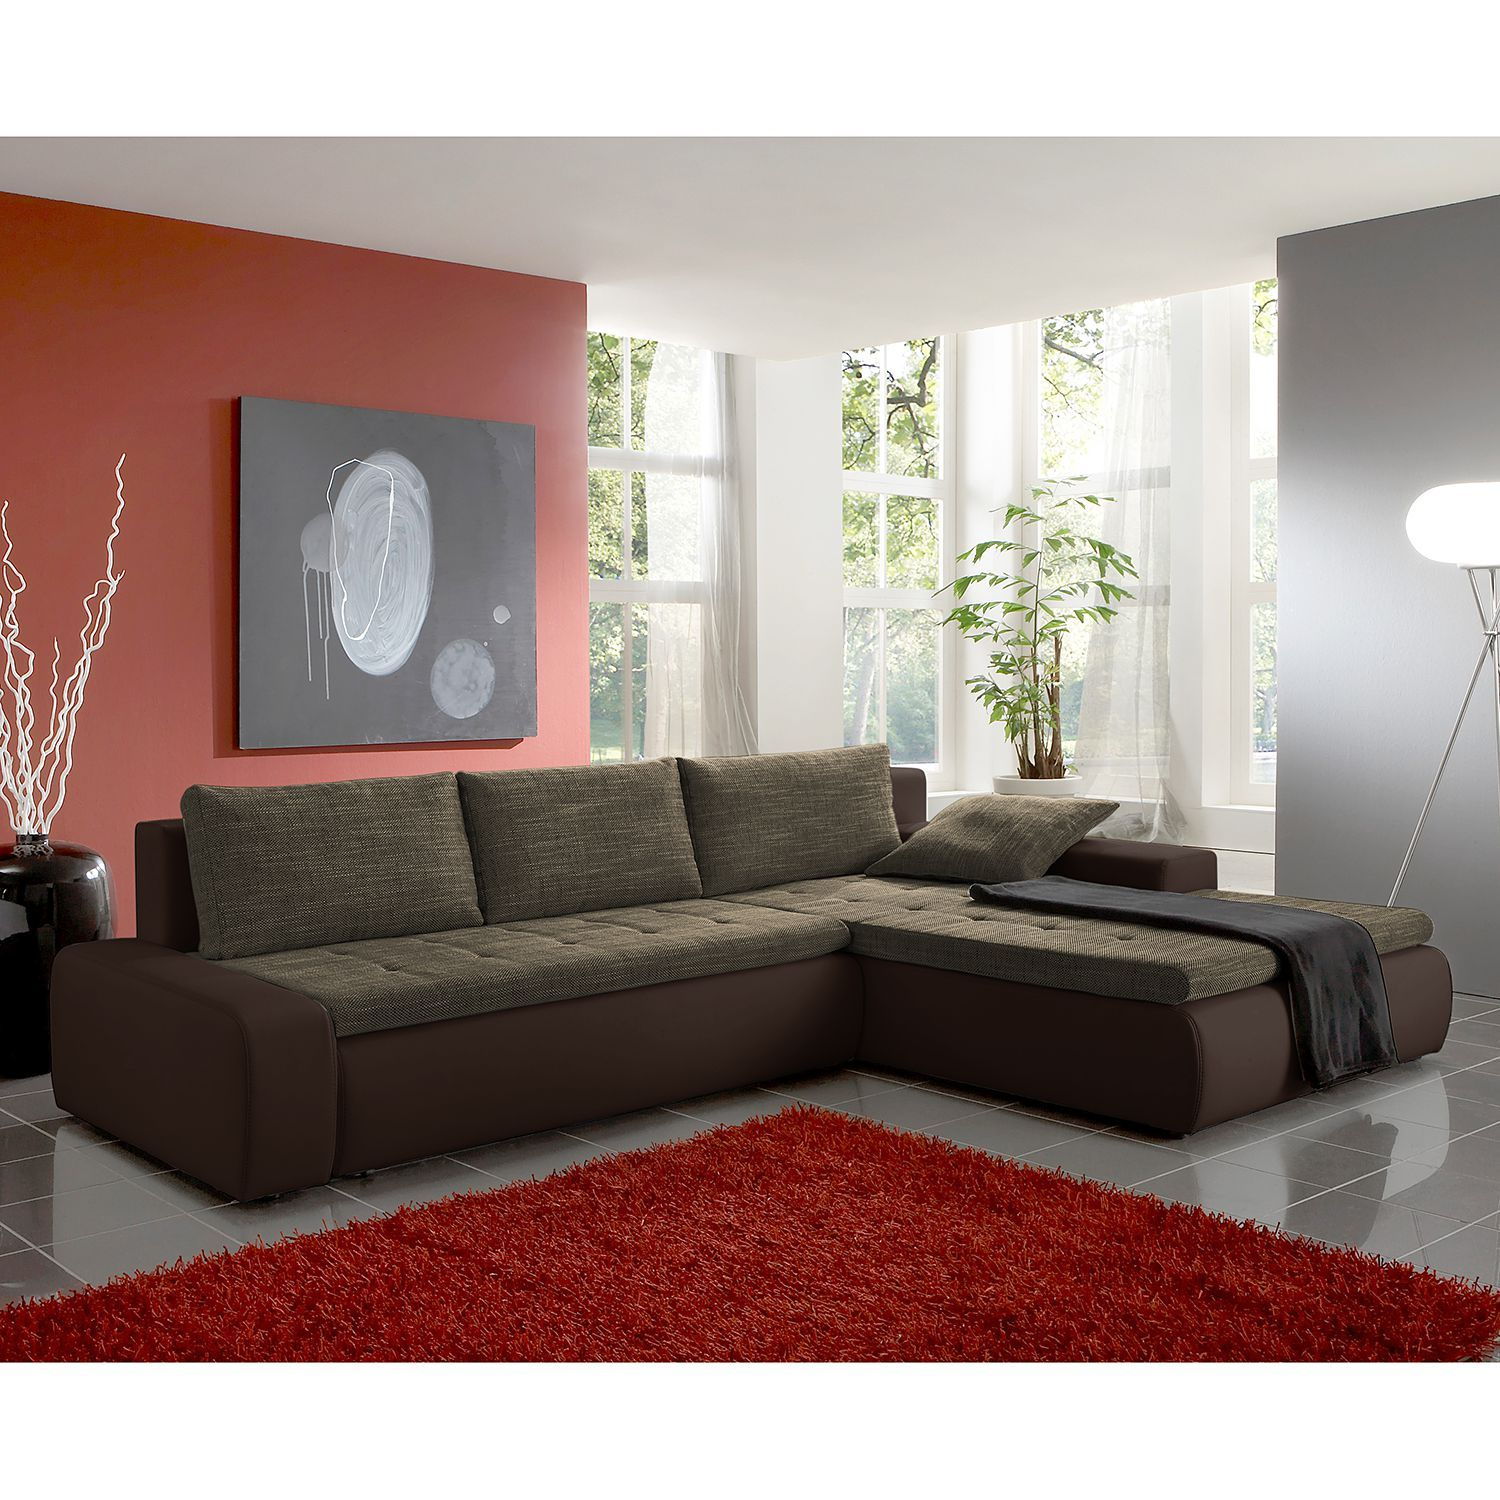 Ecksofa Montego Ecksofa Grand Bahama Products Couch Wohnlandschaft Sofa Couch